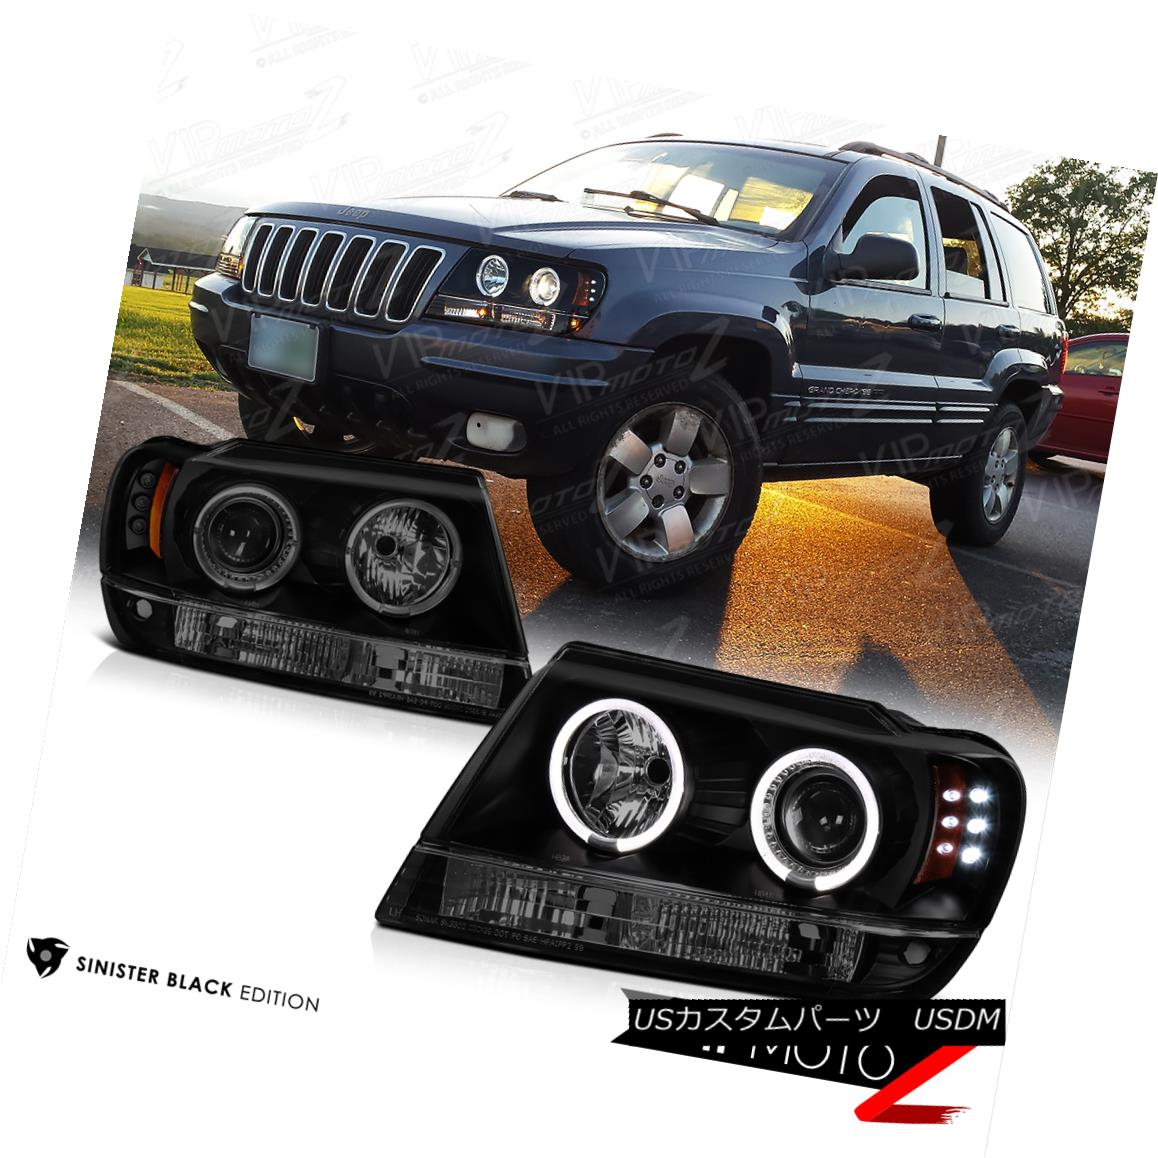 ヘッドライト [LIMITED SINISTER BLACK] 1999-2004 Jeep Grand Cherokee WJ WG Halo LED Headlights [LIMITED SINISTER BLACK] 1999-2004ジープ・グランド・チェロキーWJ WG Halo LEDヘッドライト